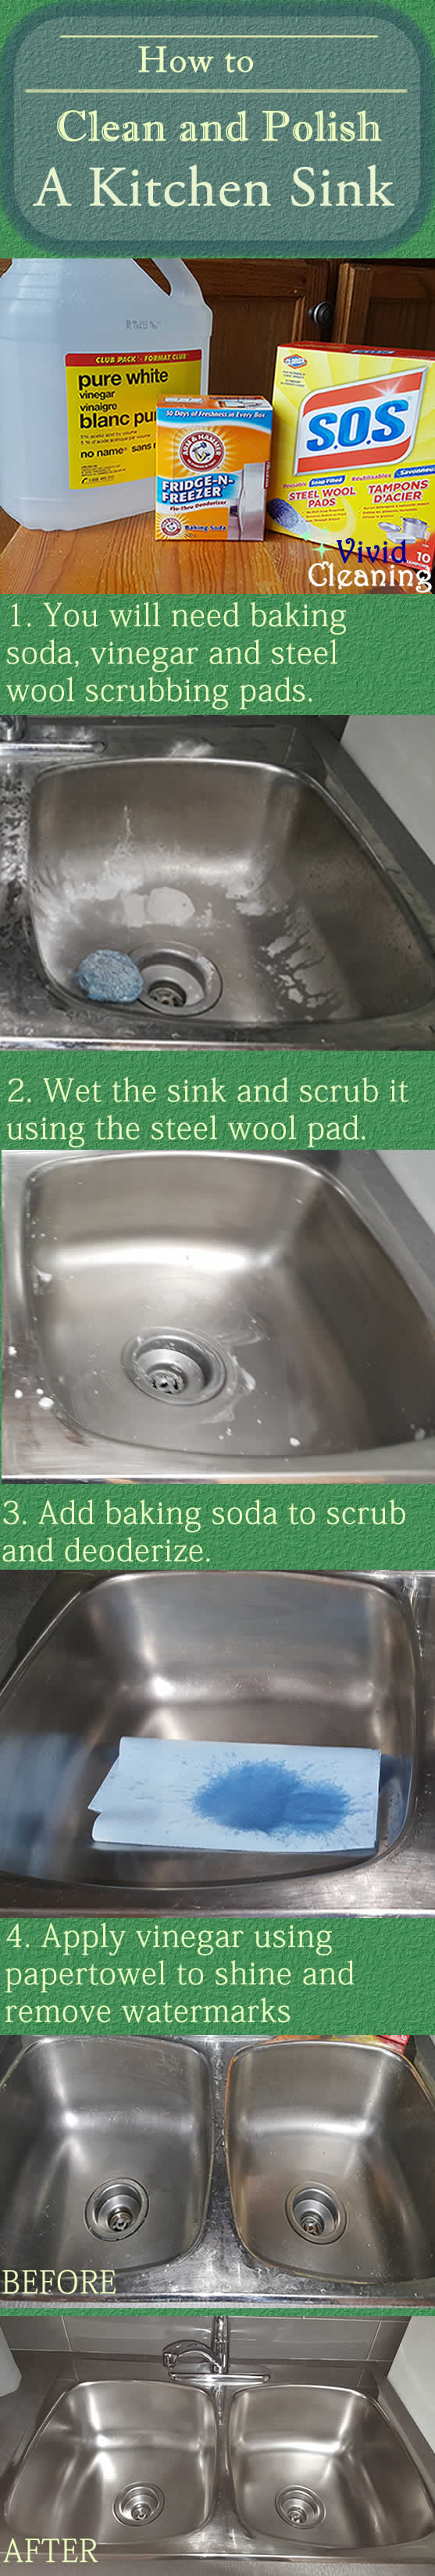 How to Clean Stainless Steel Sink Stains Naturally with Baking ...